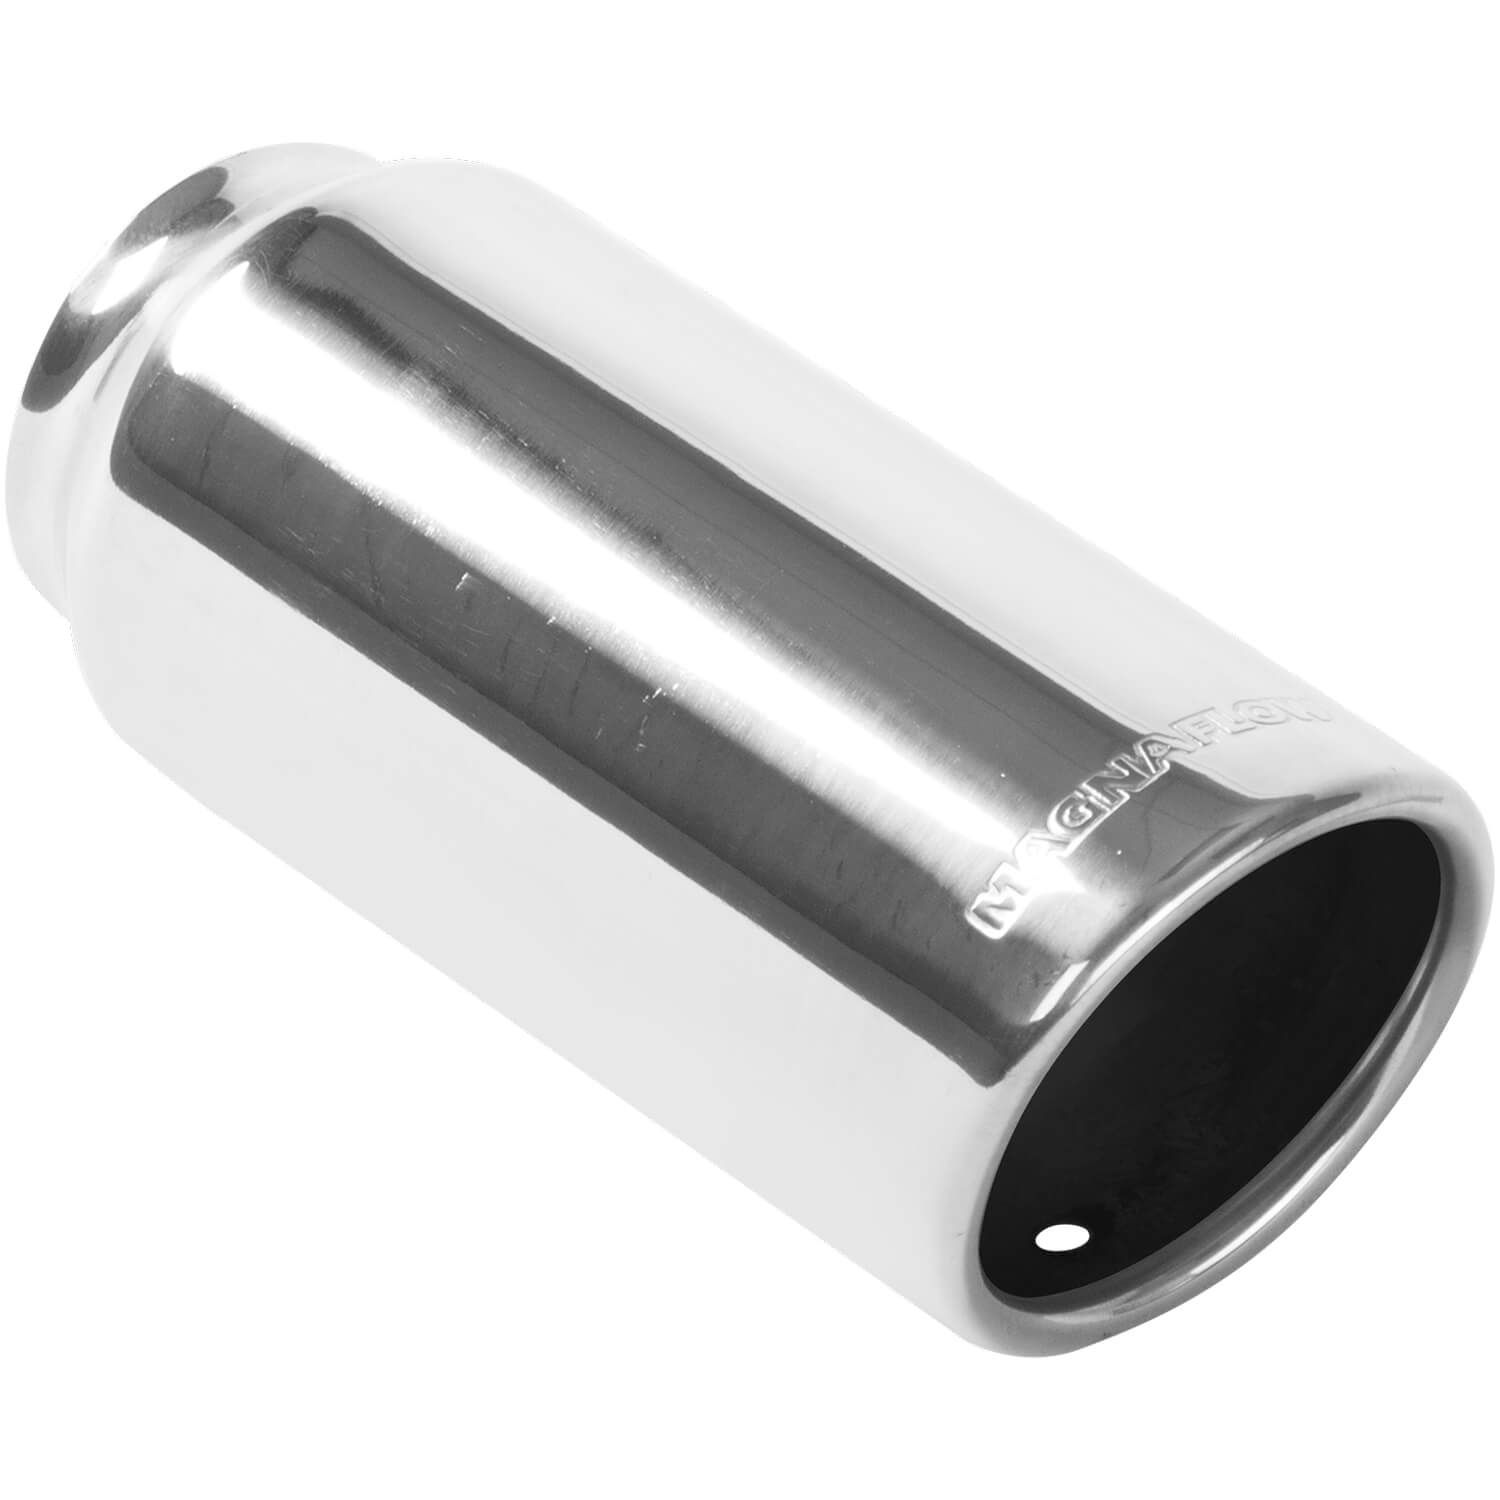 Magnaflow 35131 - Magnaflow Polished Stainless Steel Weld-On Exhaust Tips